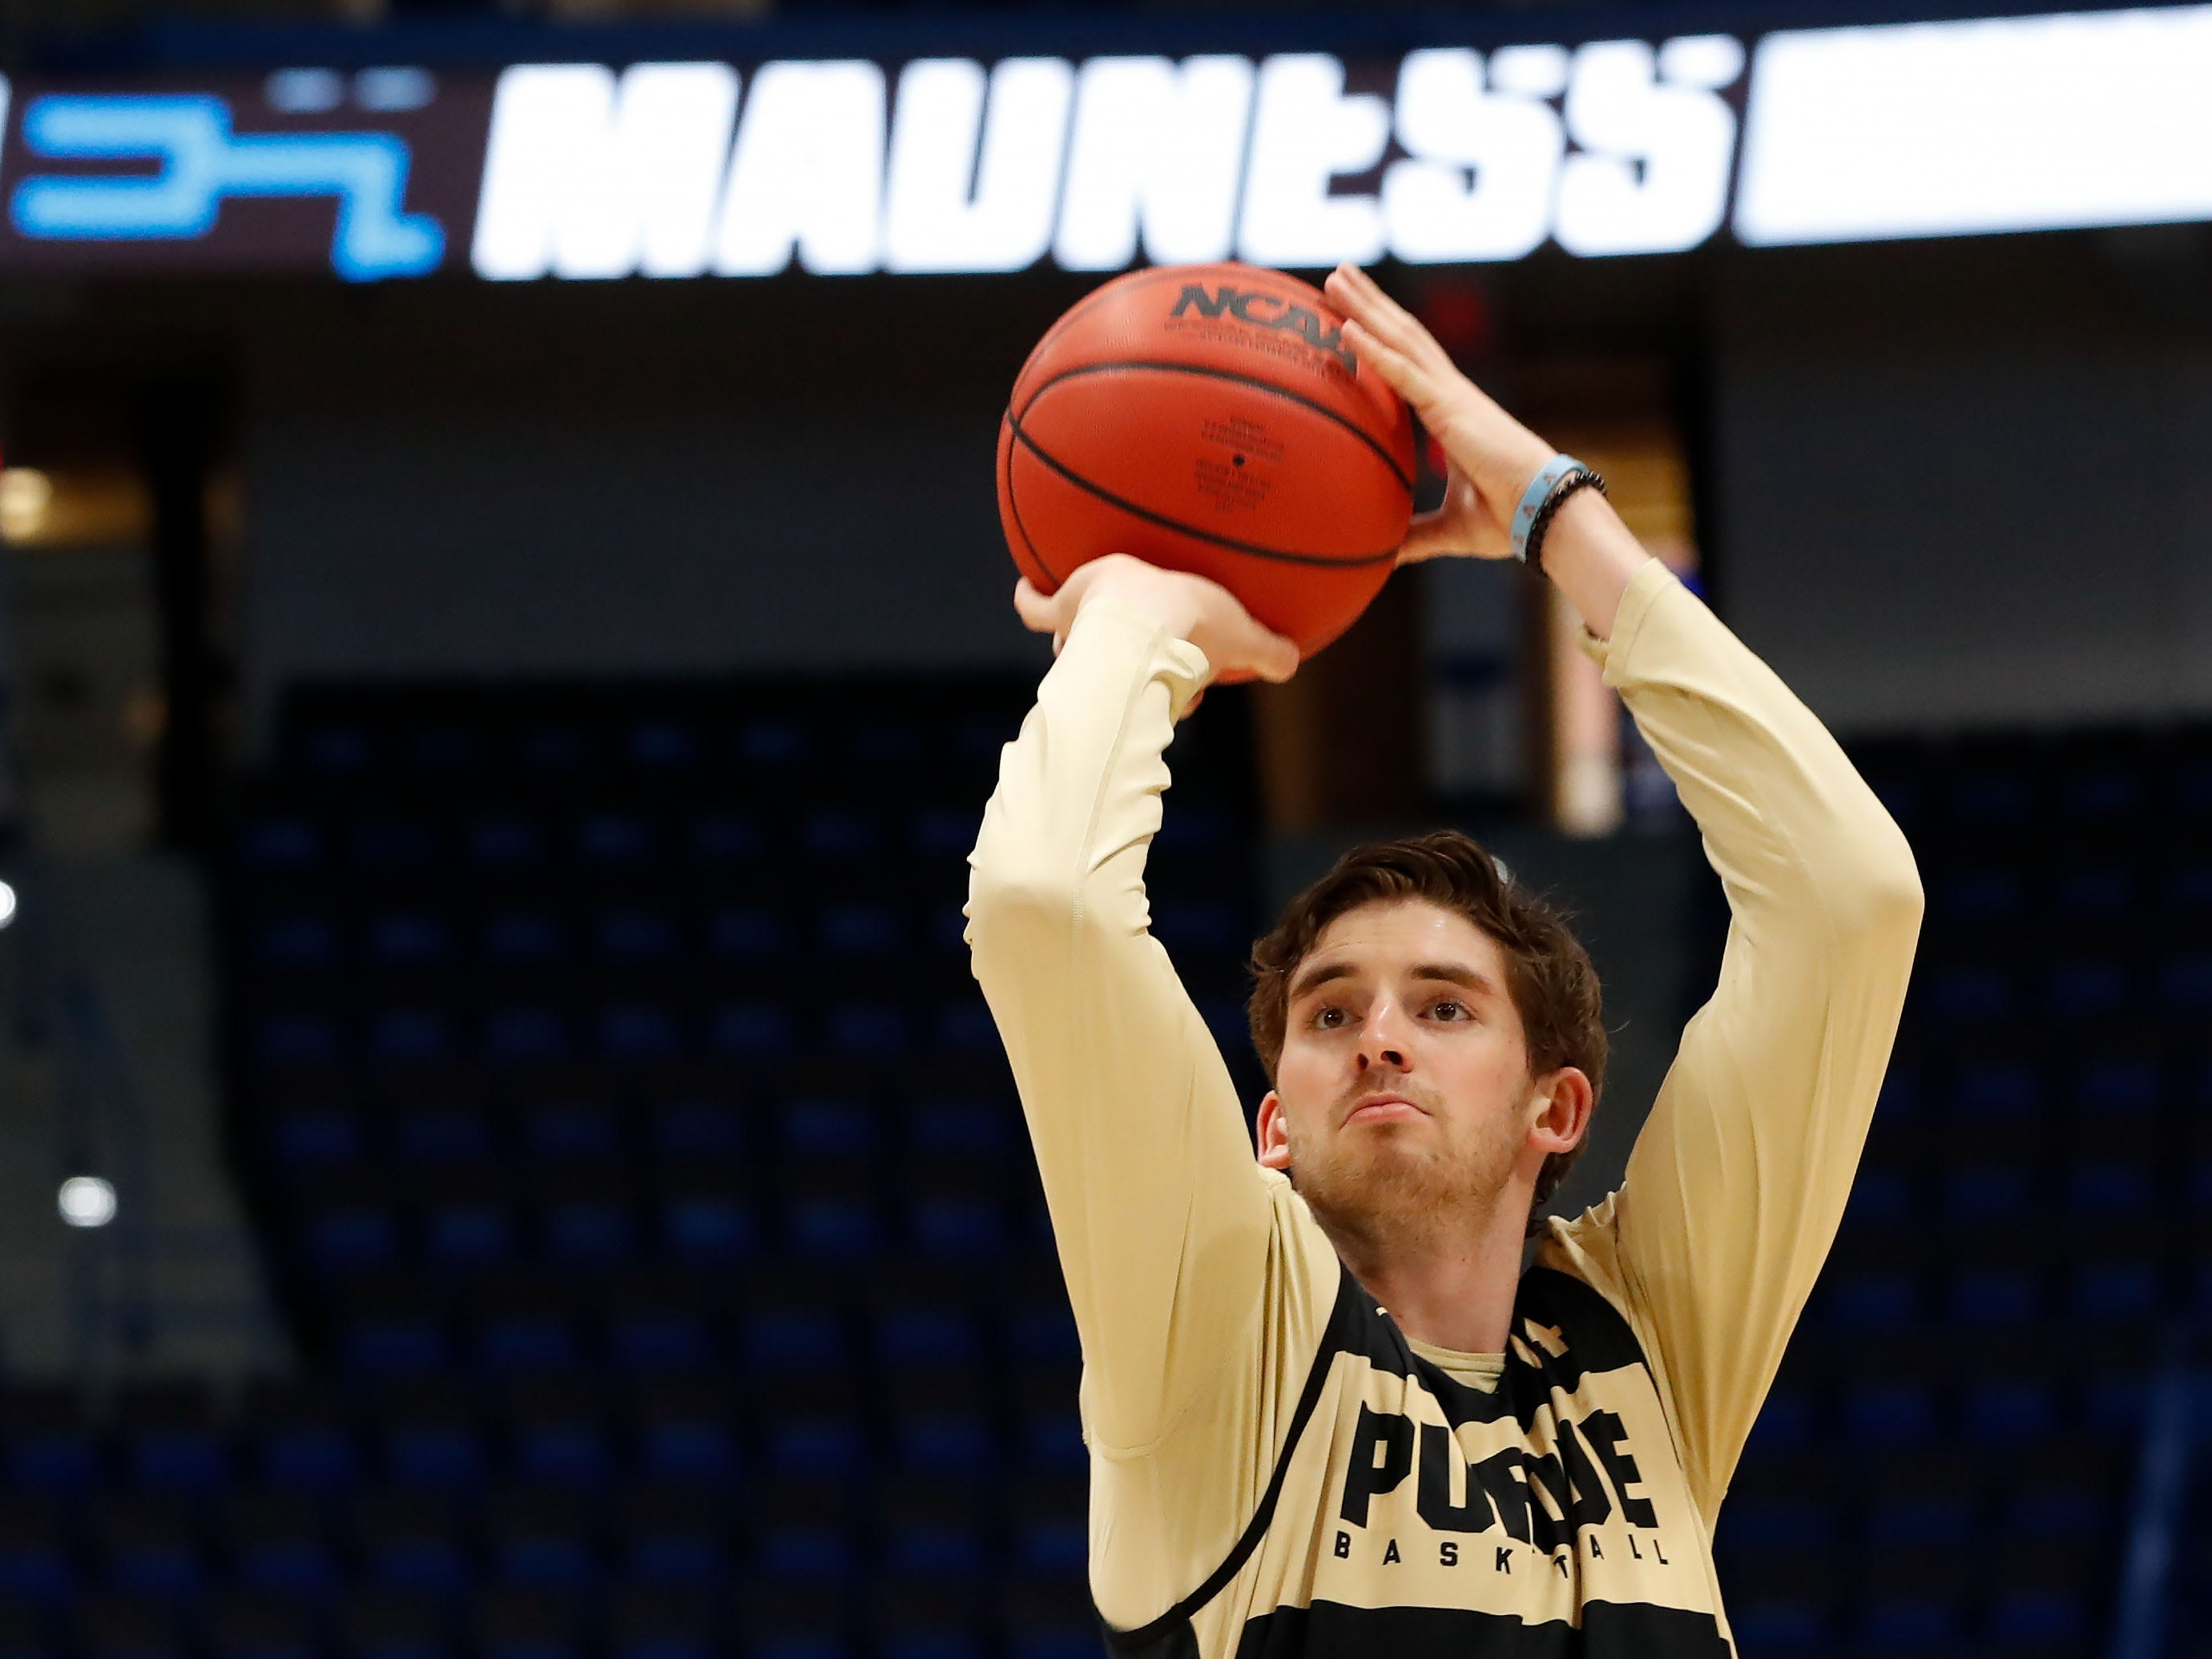 Mar 20, 2019; Hartford, CT, USA; Purdue Boilermakers guard Ryan Cline (14) attempts a shot during practice before the first round of the 2019 NCAA Tournament at XL Center. Mandatory Credit: David Butler II-USA TODAY Sports